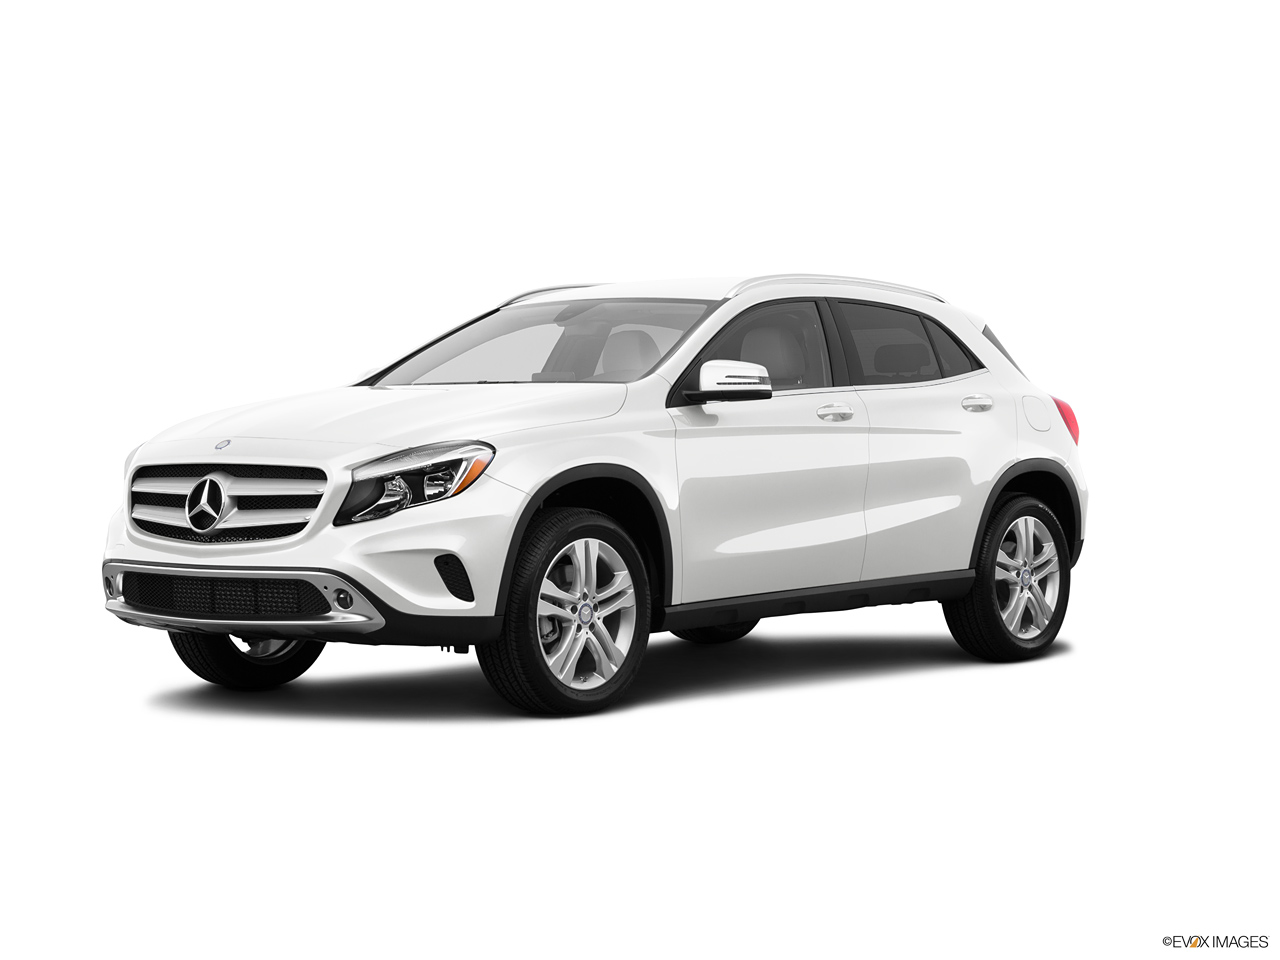 Mercedes benz gla 2016 250 in kuwait new car prices for Mercedes benz extended warranty prices